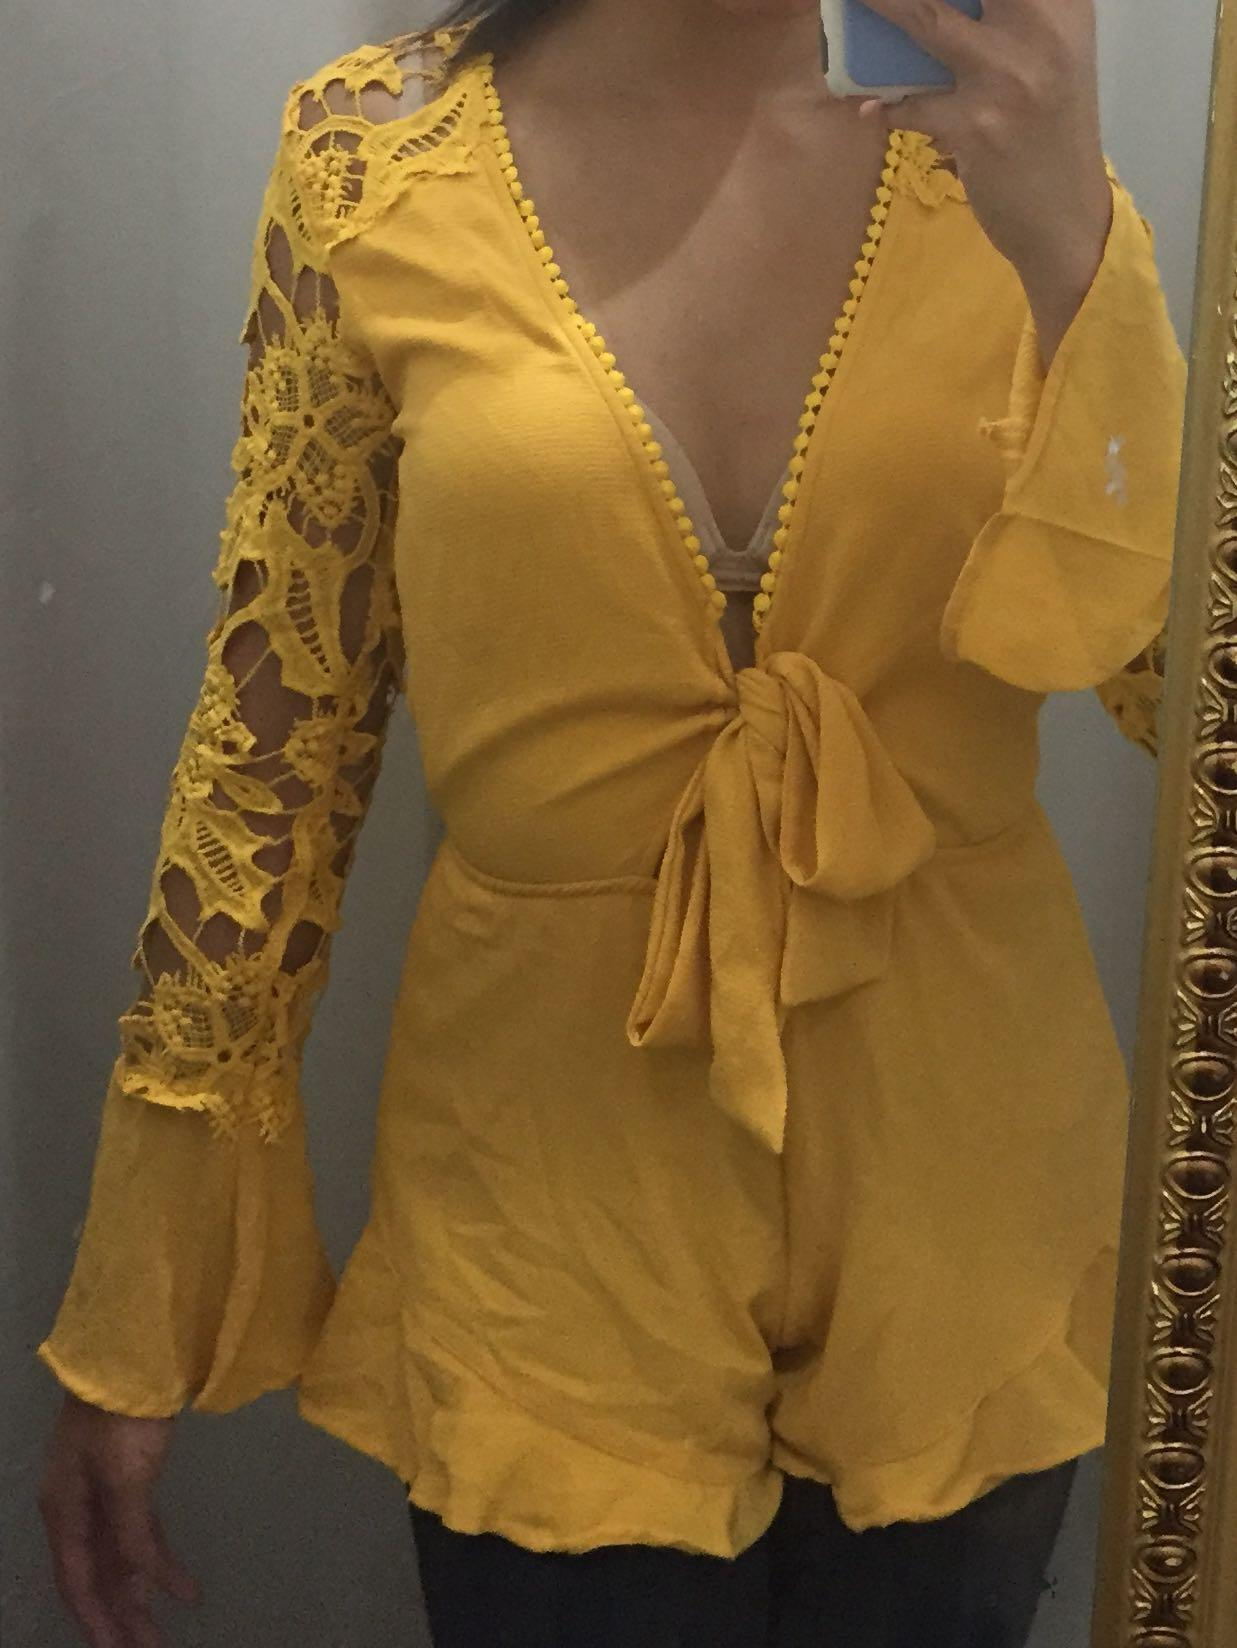 NEW yellow tigermist bell sleeve lace tie up playsuit